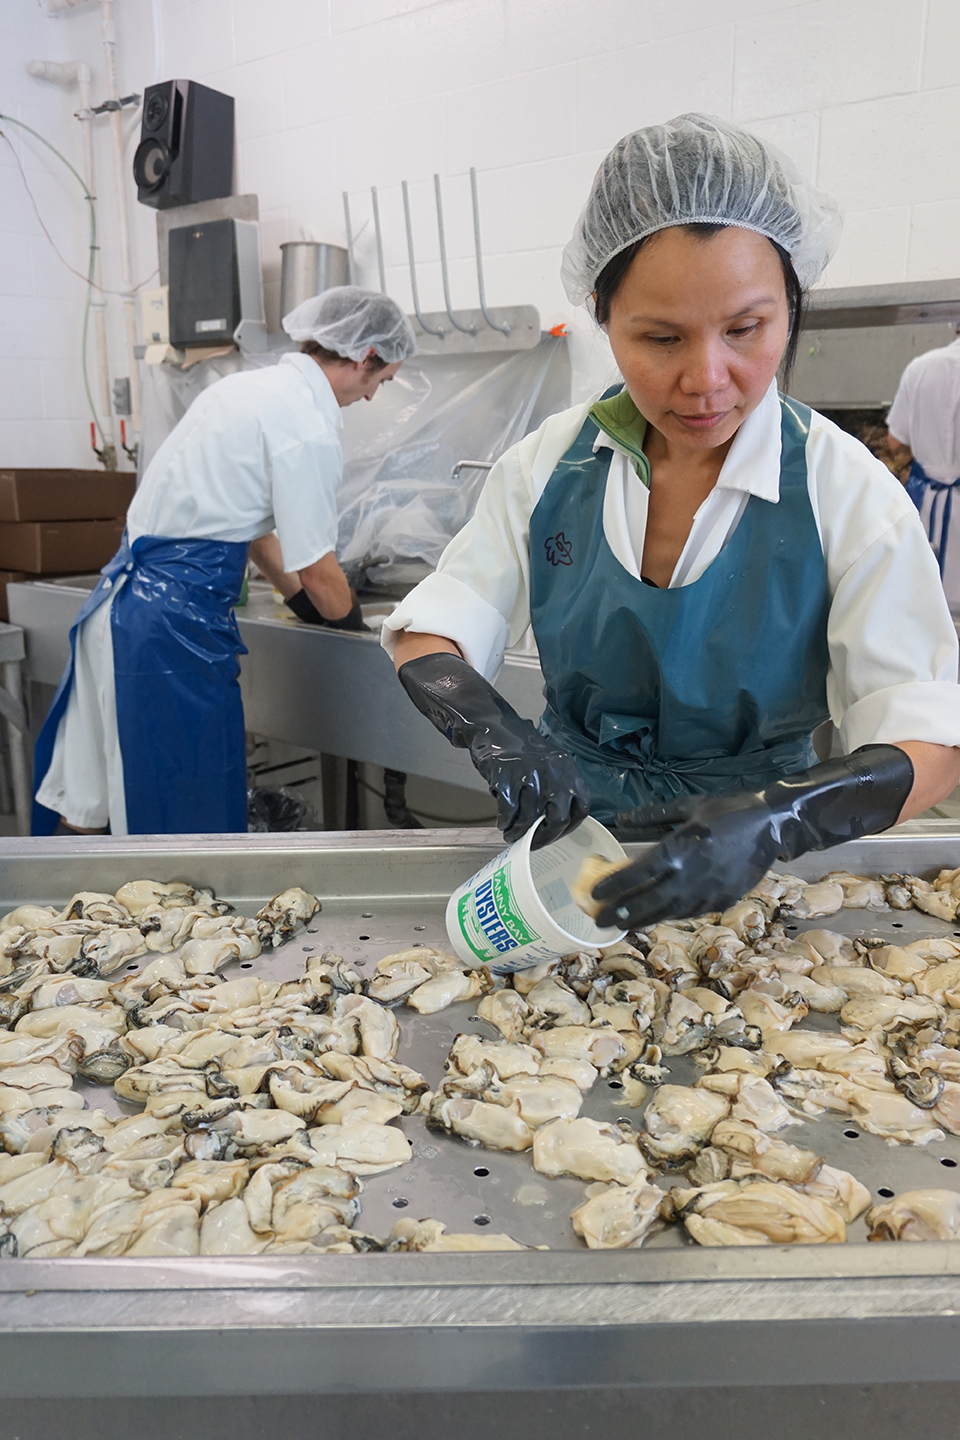 Fanny Bay Oysters employee putting shucked oyster meat into tub